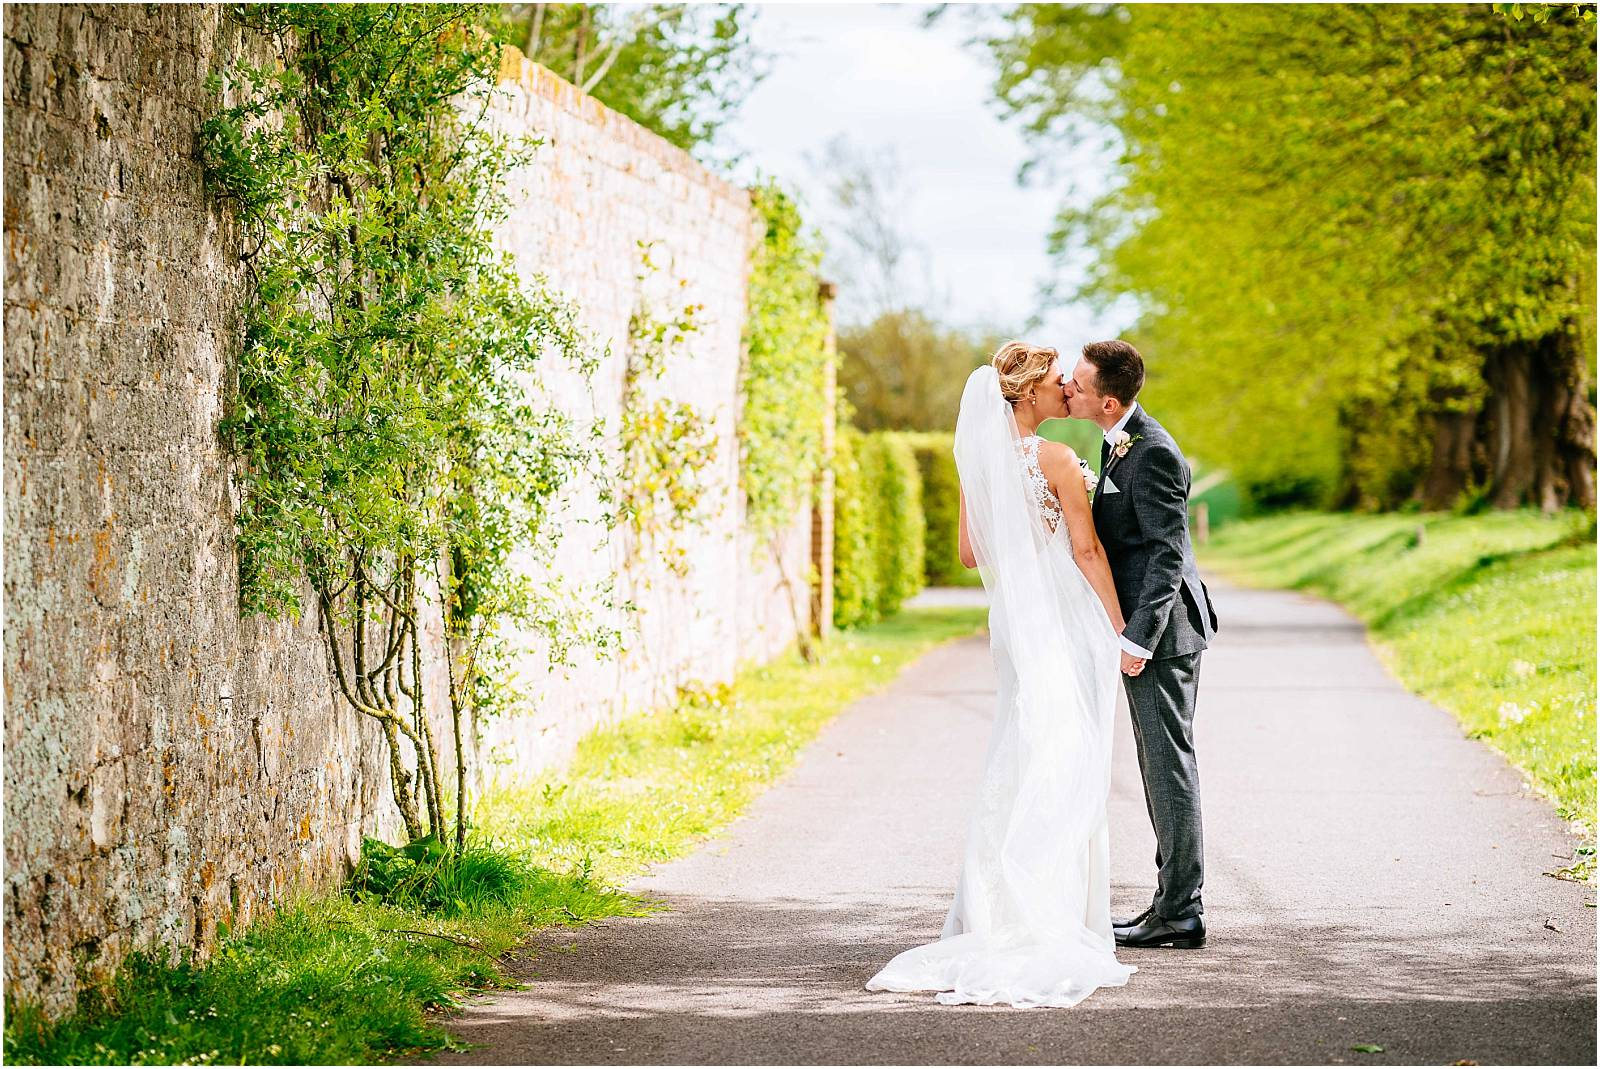 Bury Court Barn Wedding Photography – Fern and Tim's Surrey wedding